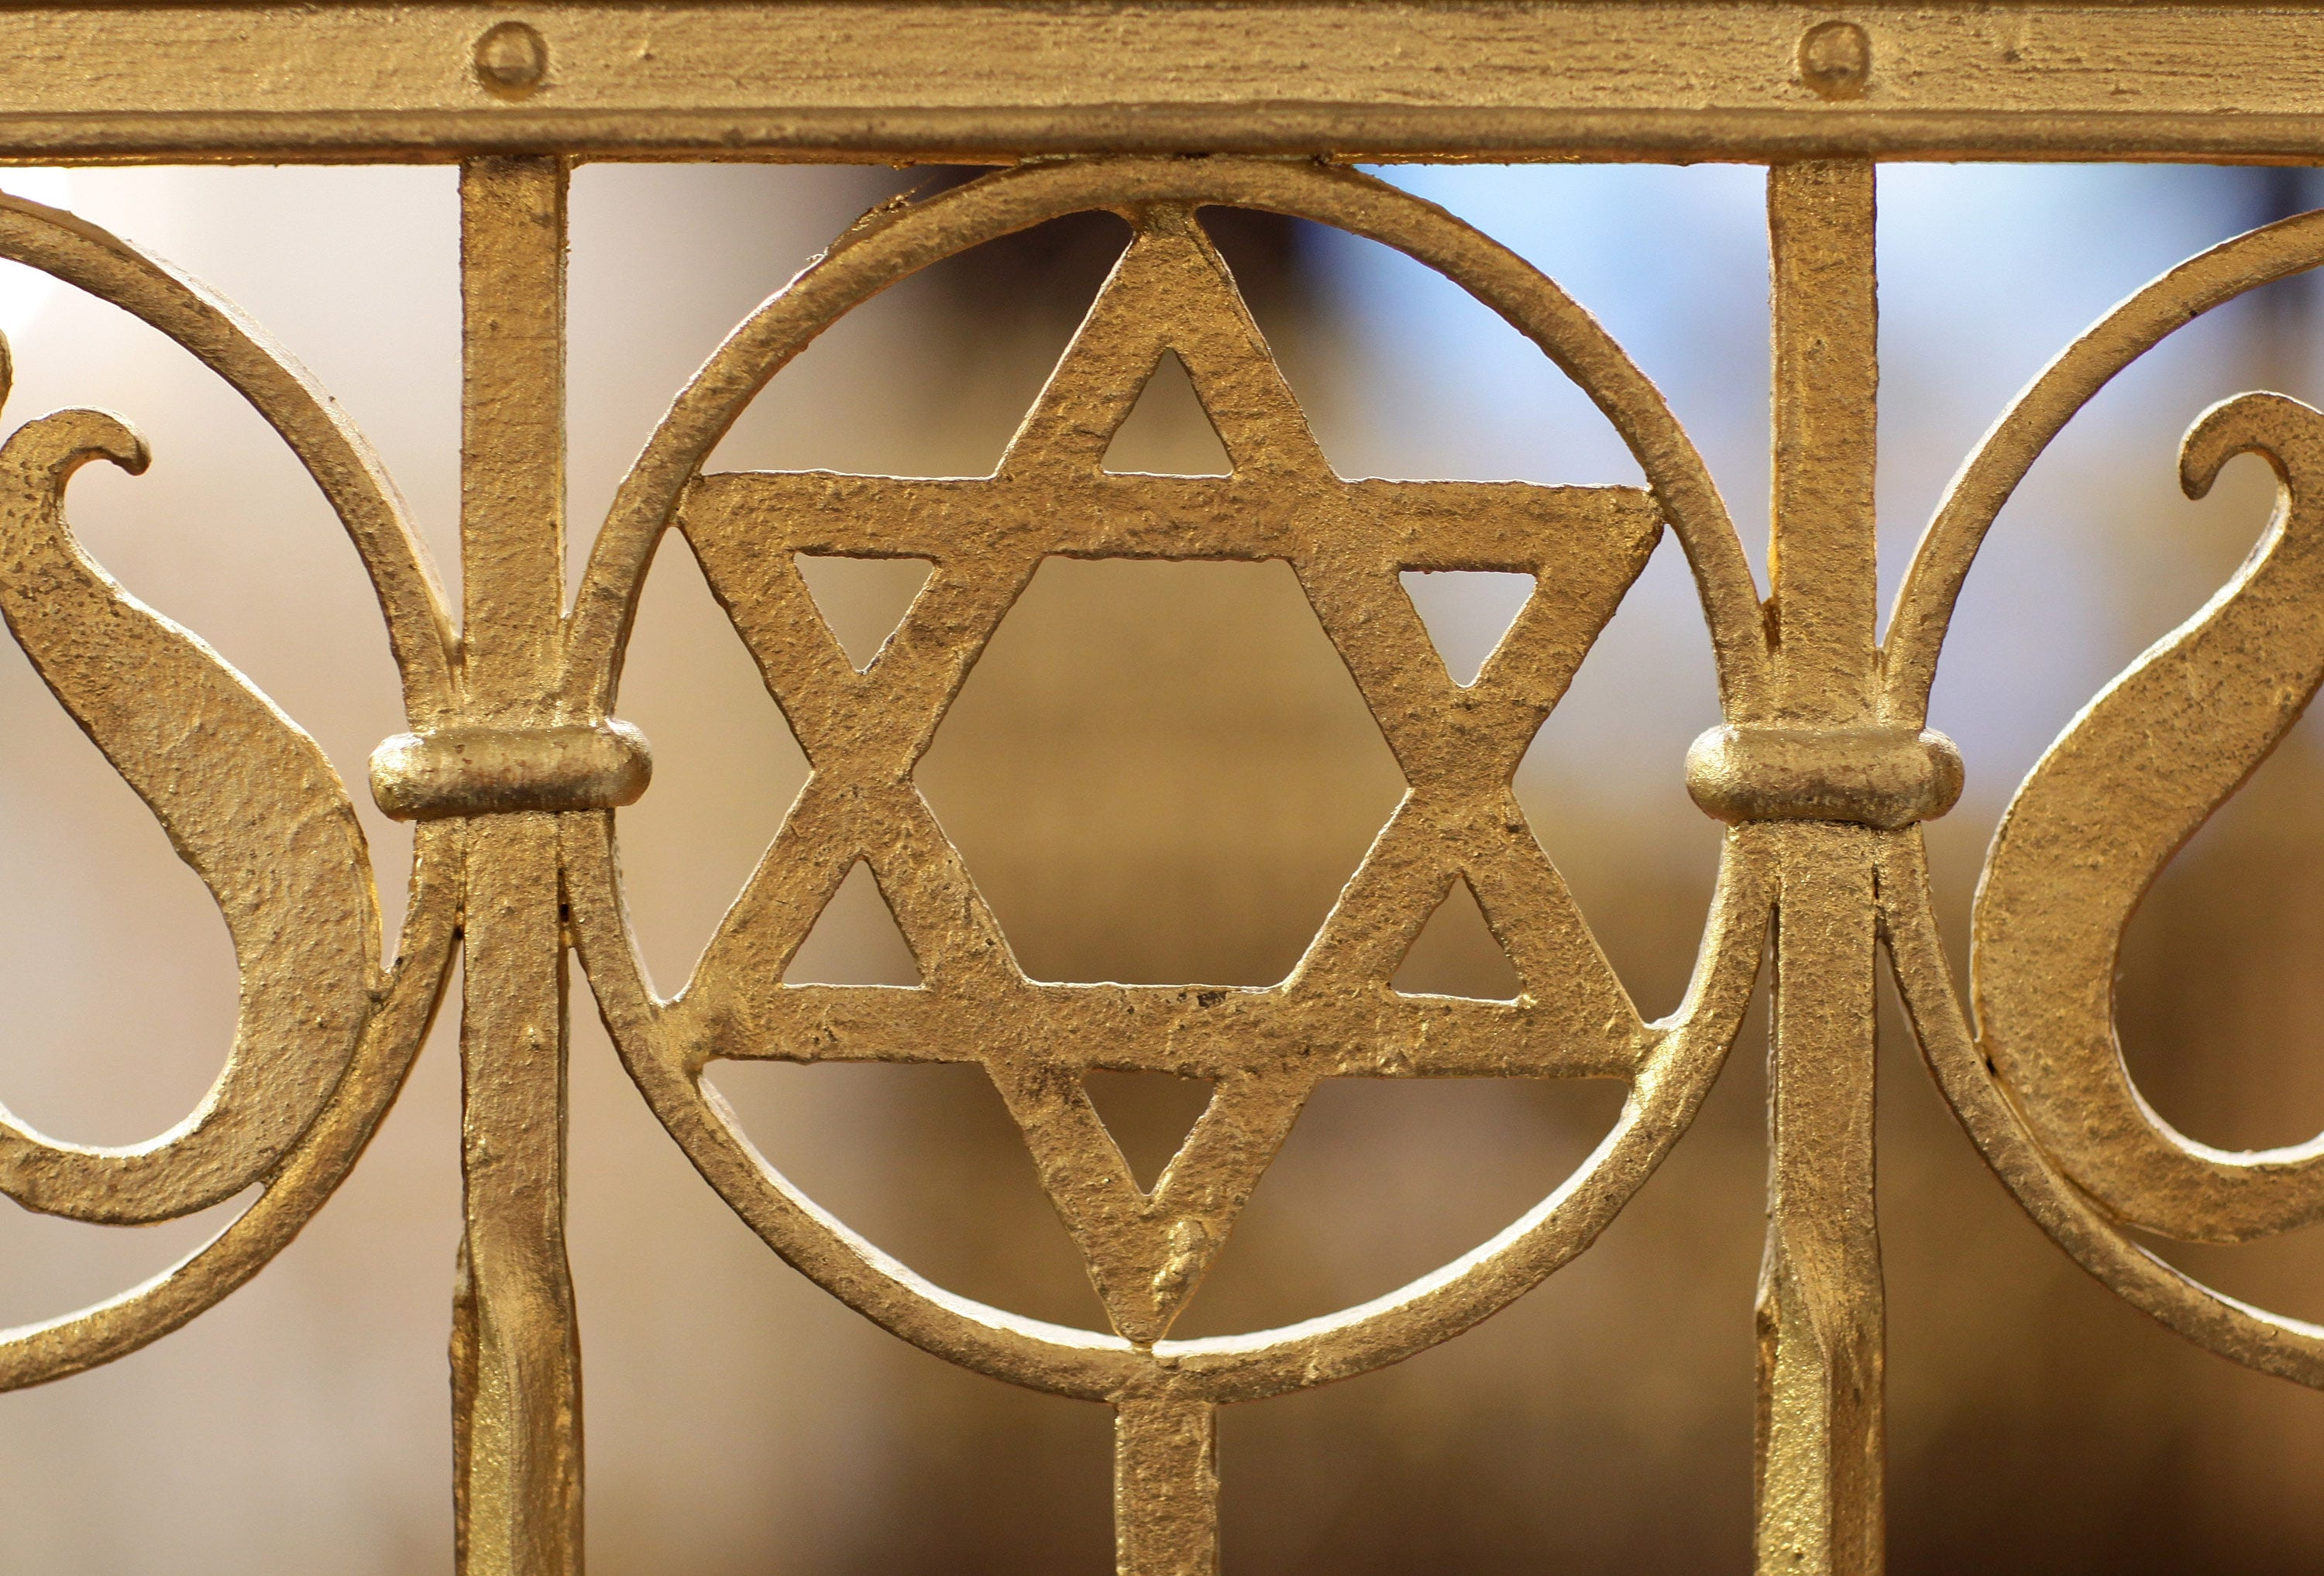 Does Jewish count as a religion or ethnicity or both?